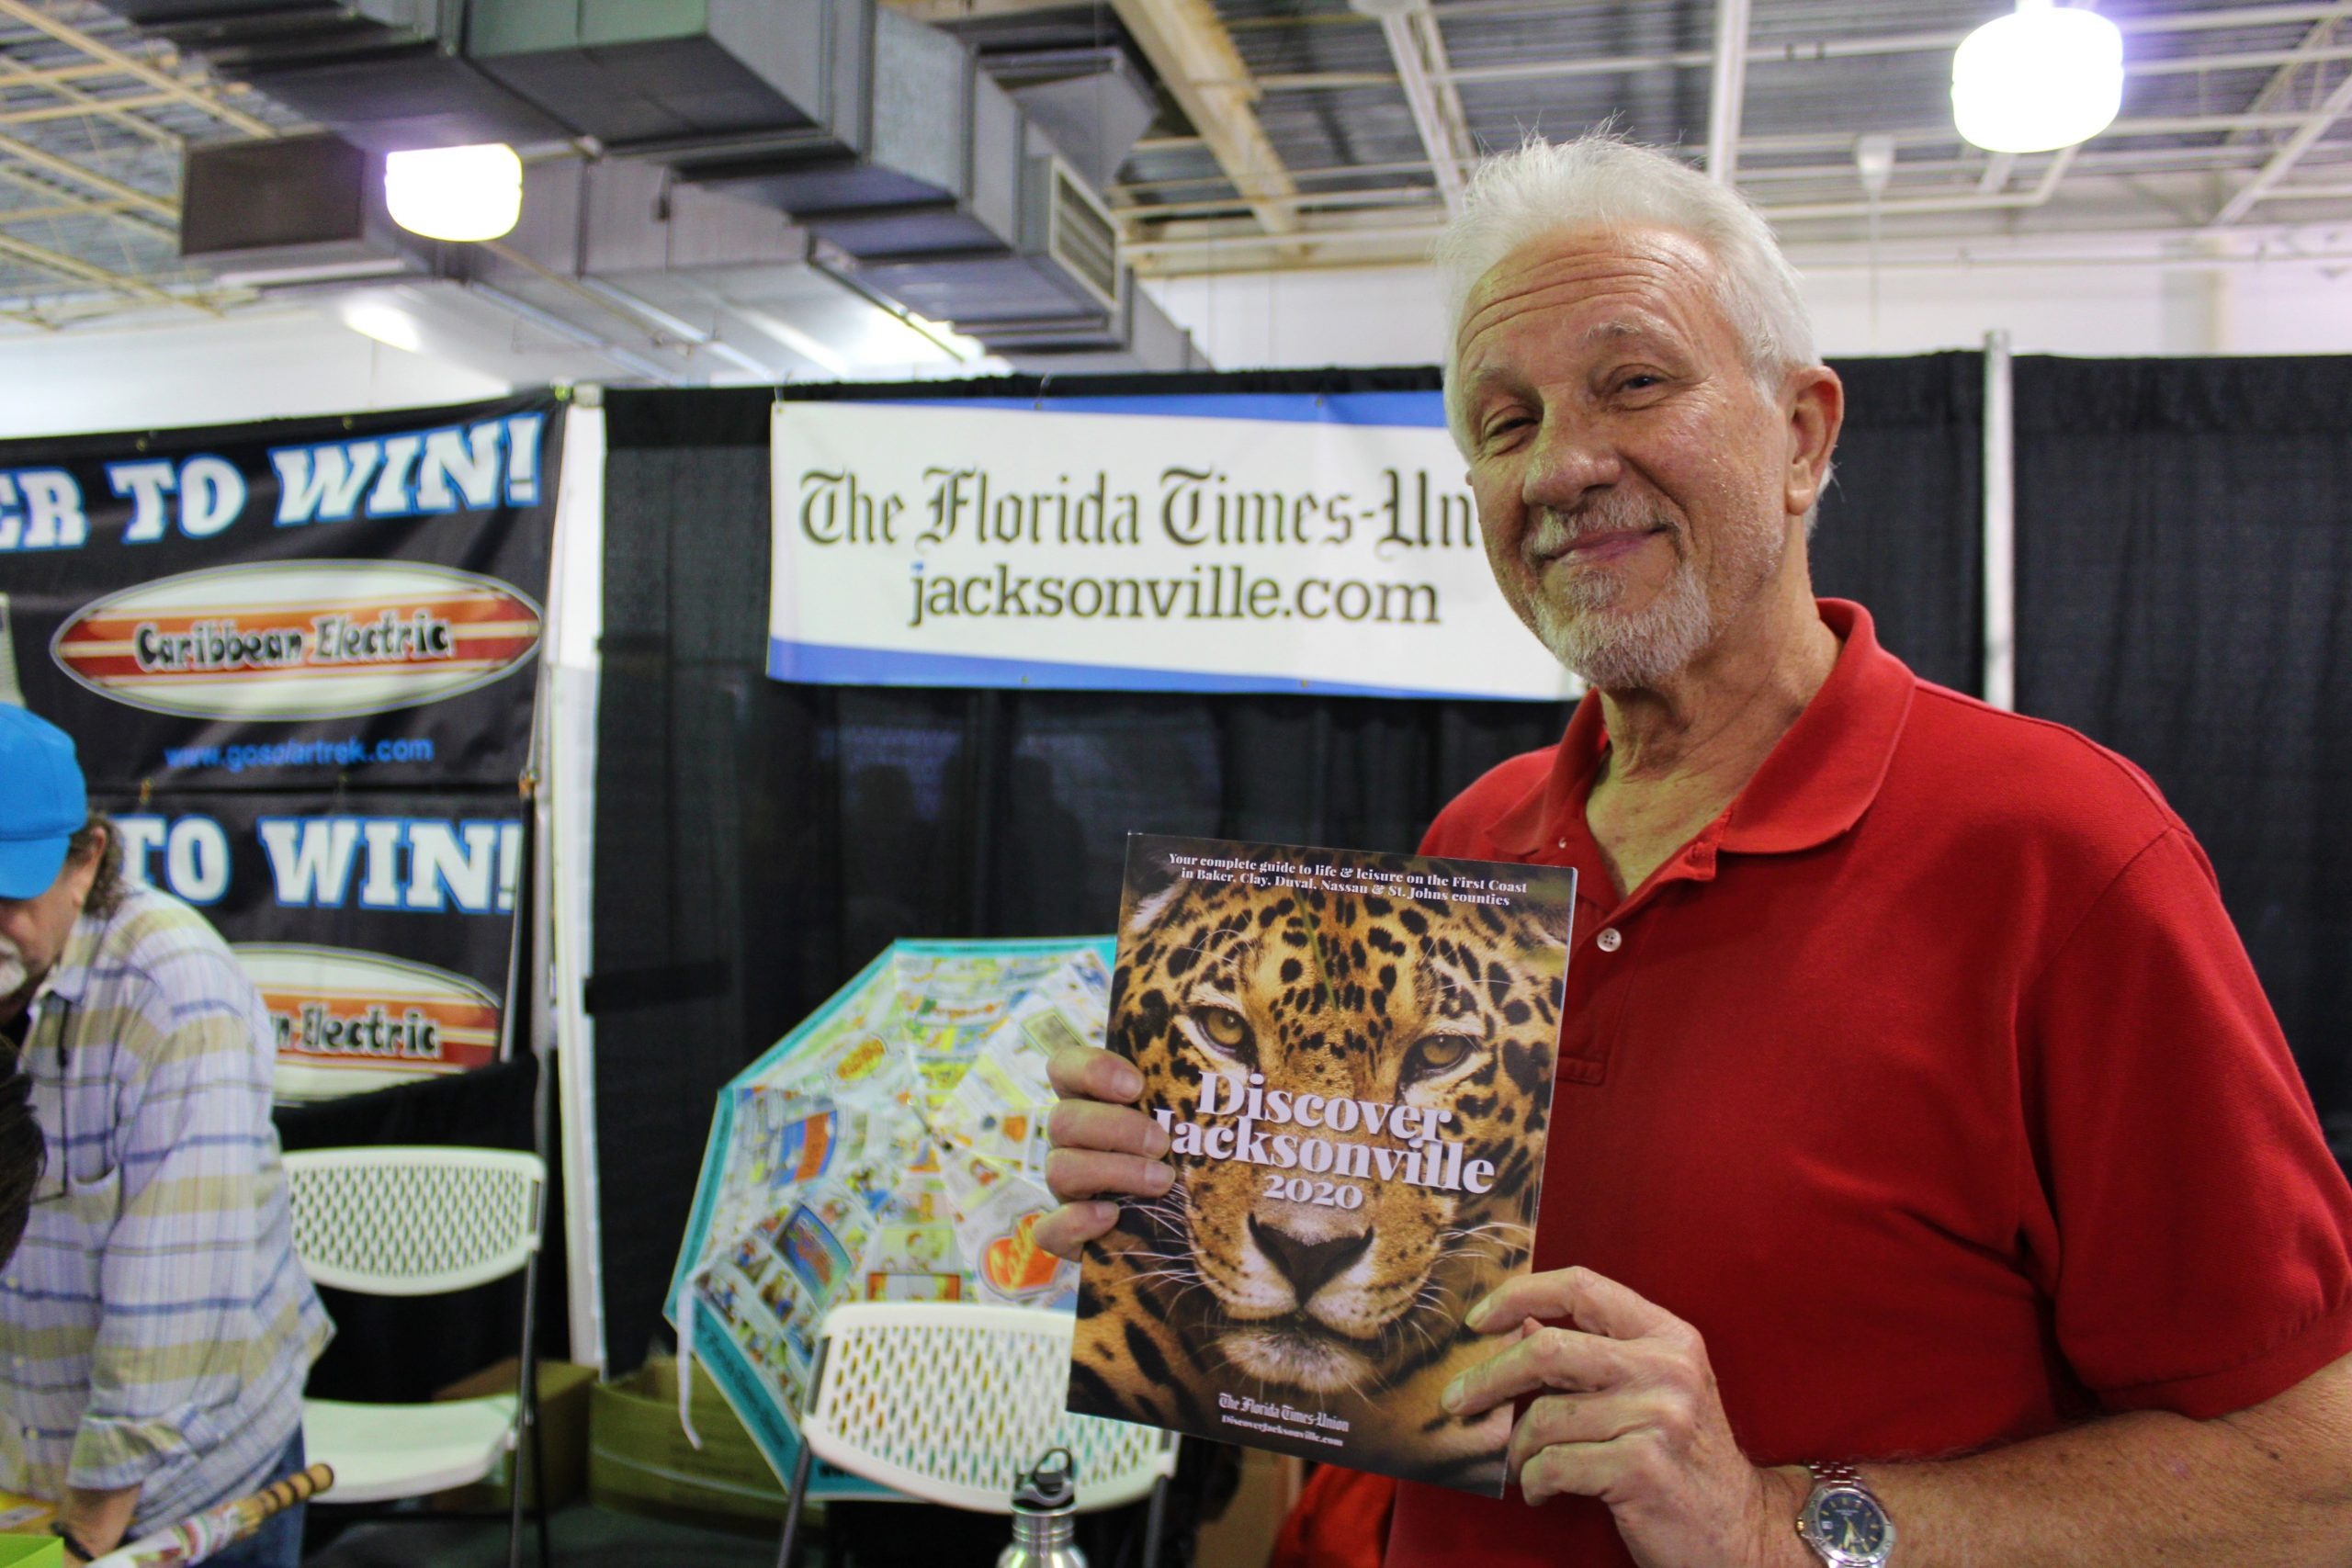 The Florida Times Union at Jacksonville Home & Garden Show